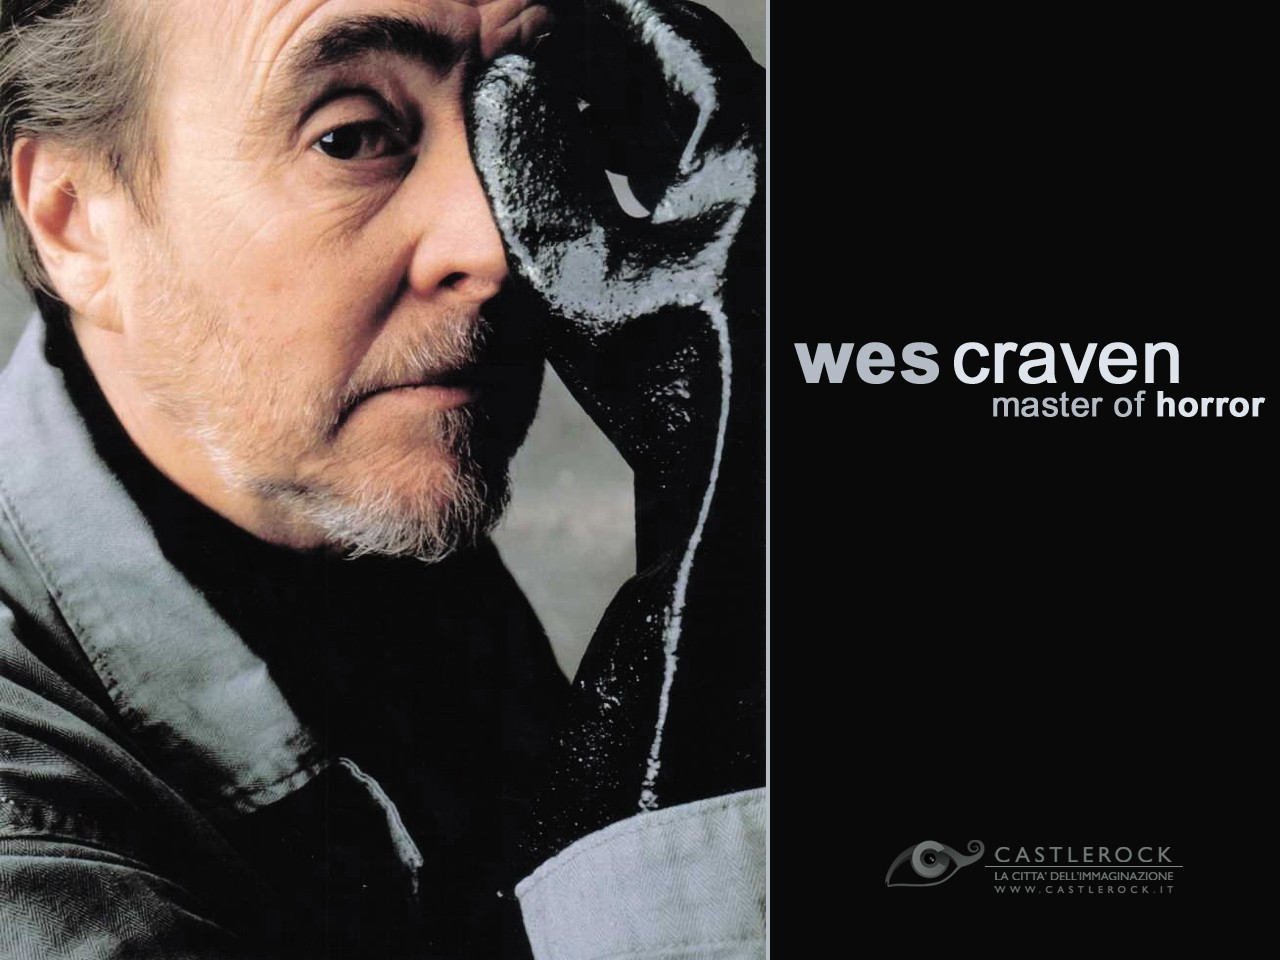 Wallpaper di Wes Craven